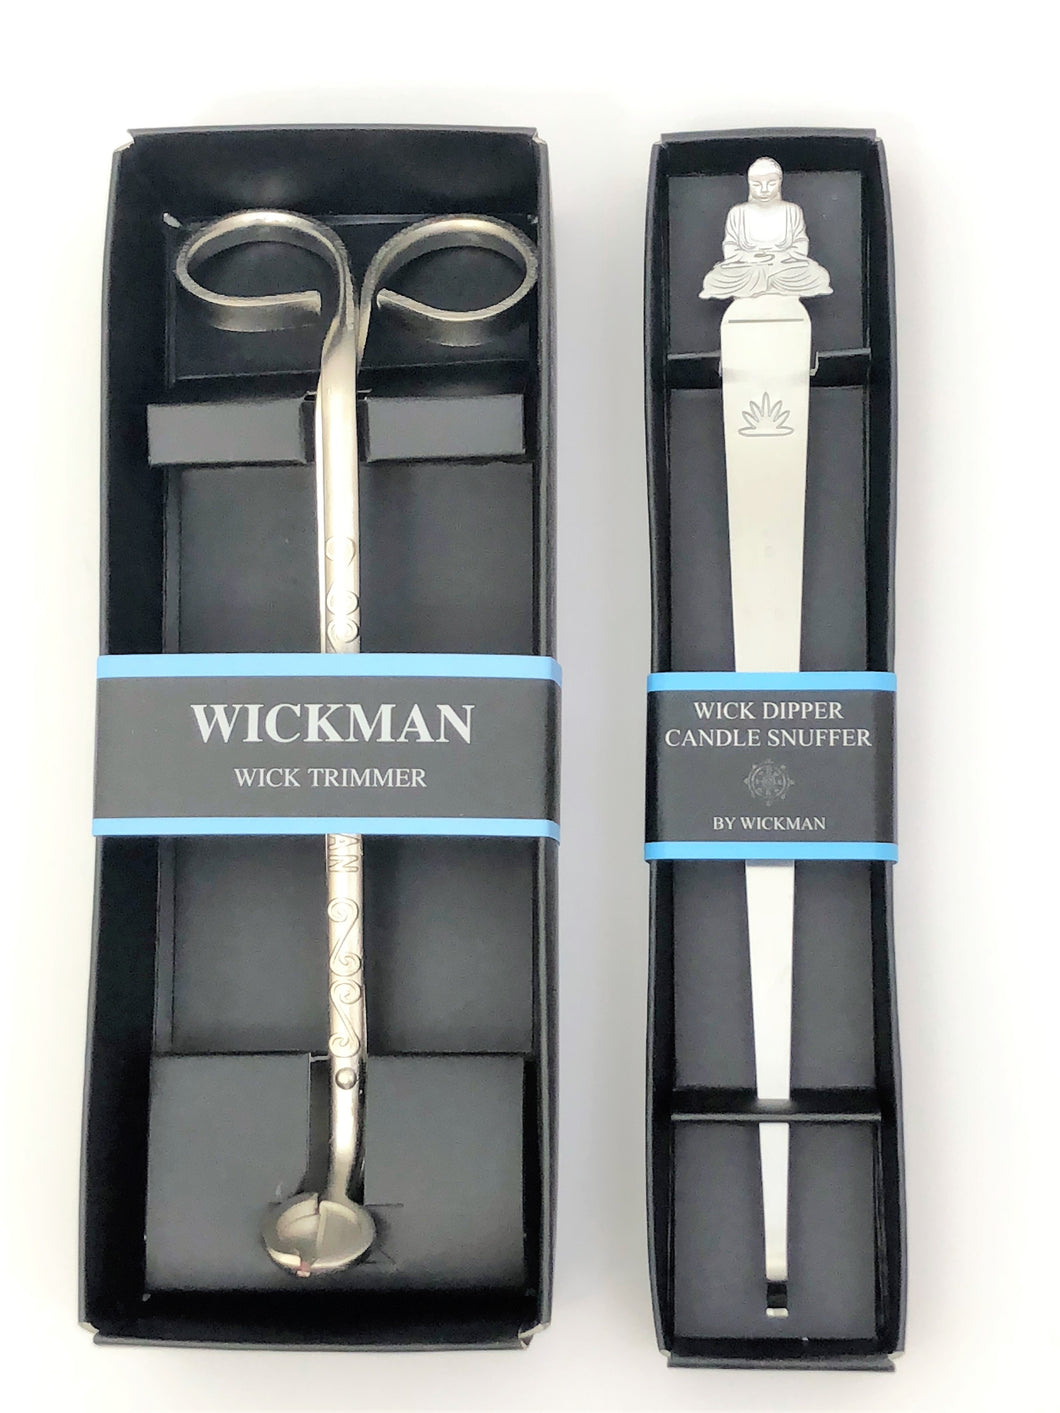 Original Wick Trimmer Boxed and Wick Dipper Buddha Motif Snuffer - WTWD05